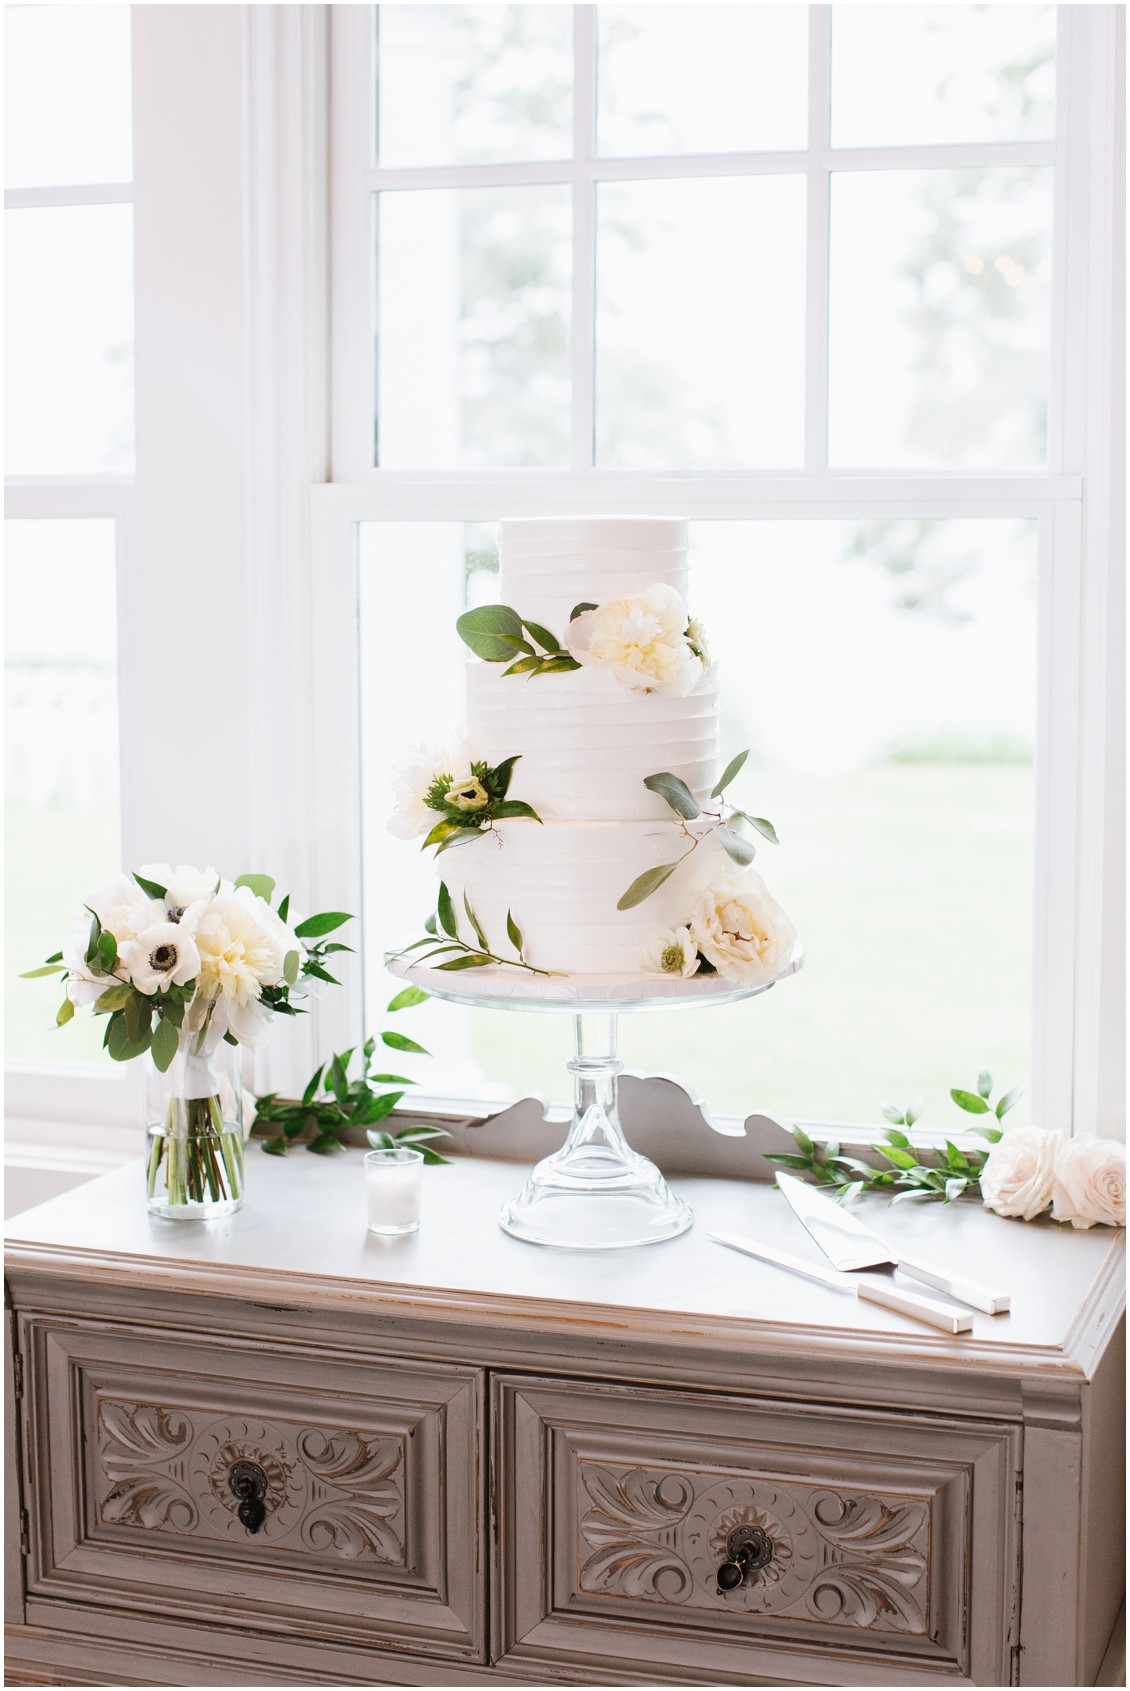 Honey Hive Bakery wedding cake | White icing and natural florals | My Eastern Shore Wedding